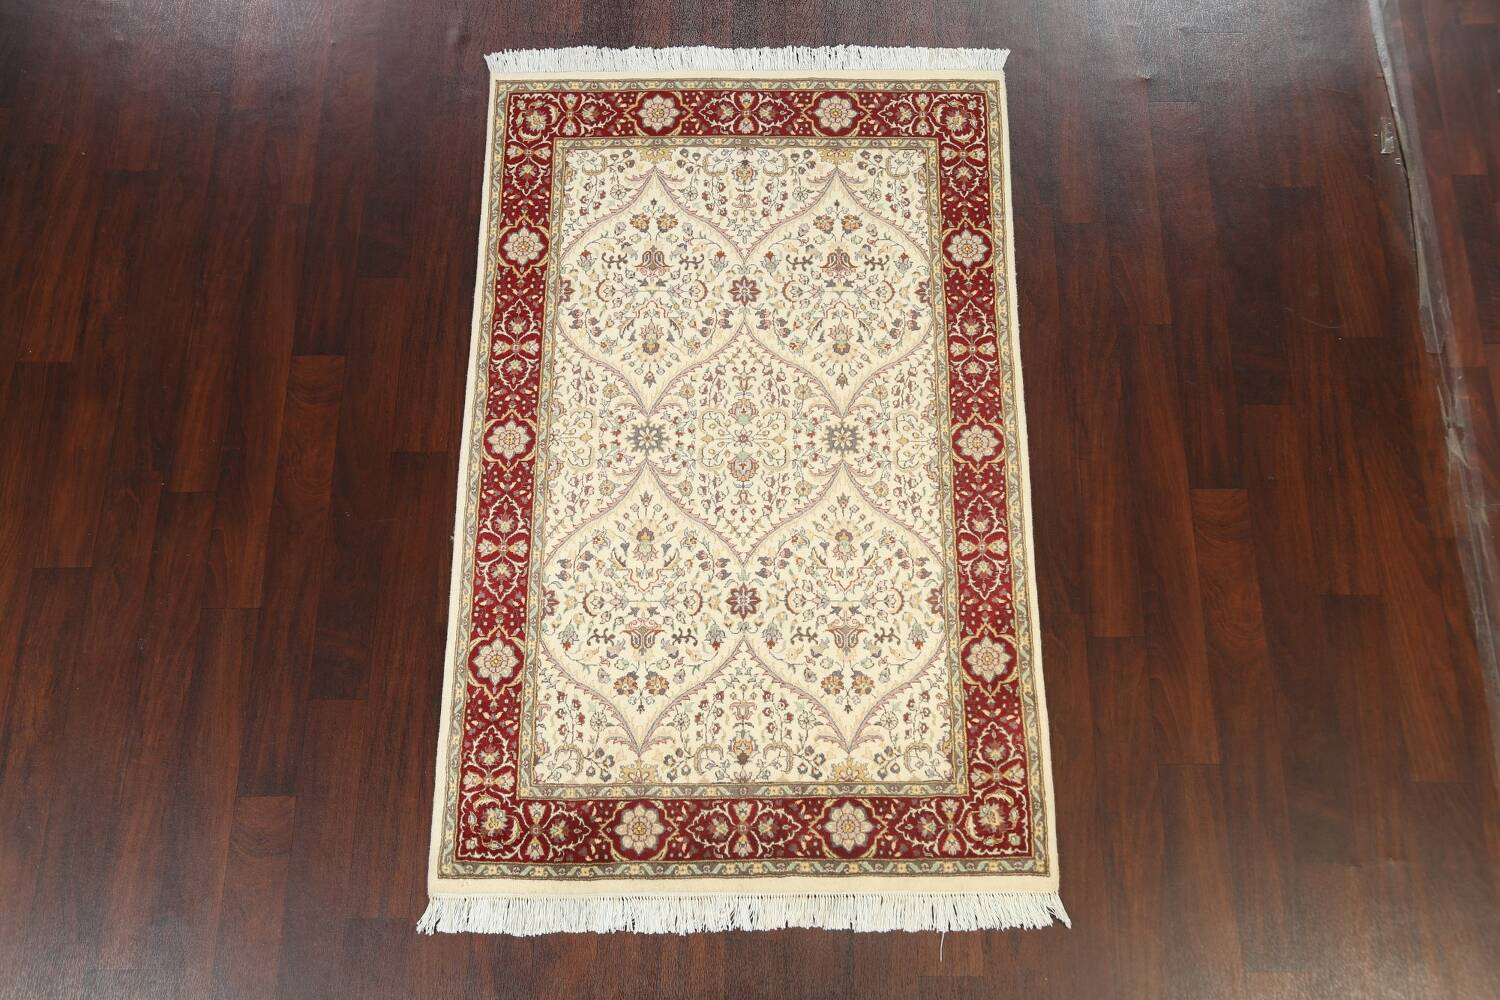 100% Vegetable Dye Floral Tabriz Oriental Area Rug 4x6 image 2